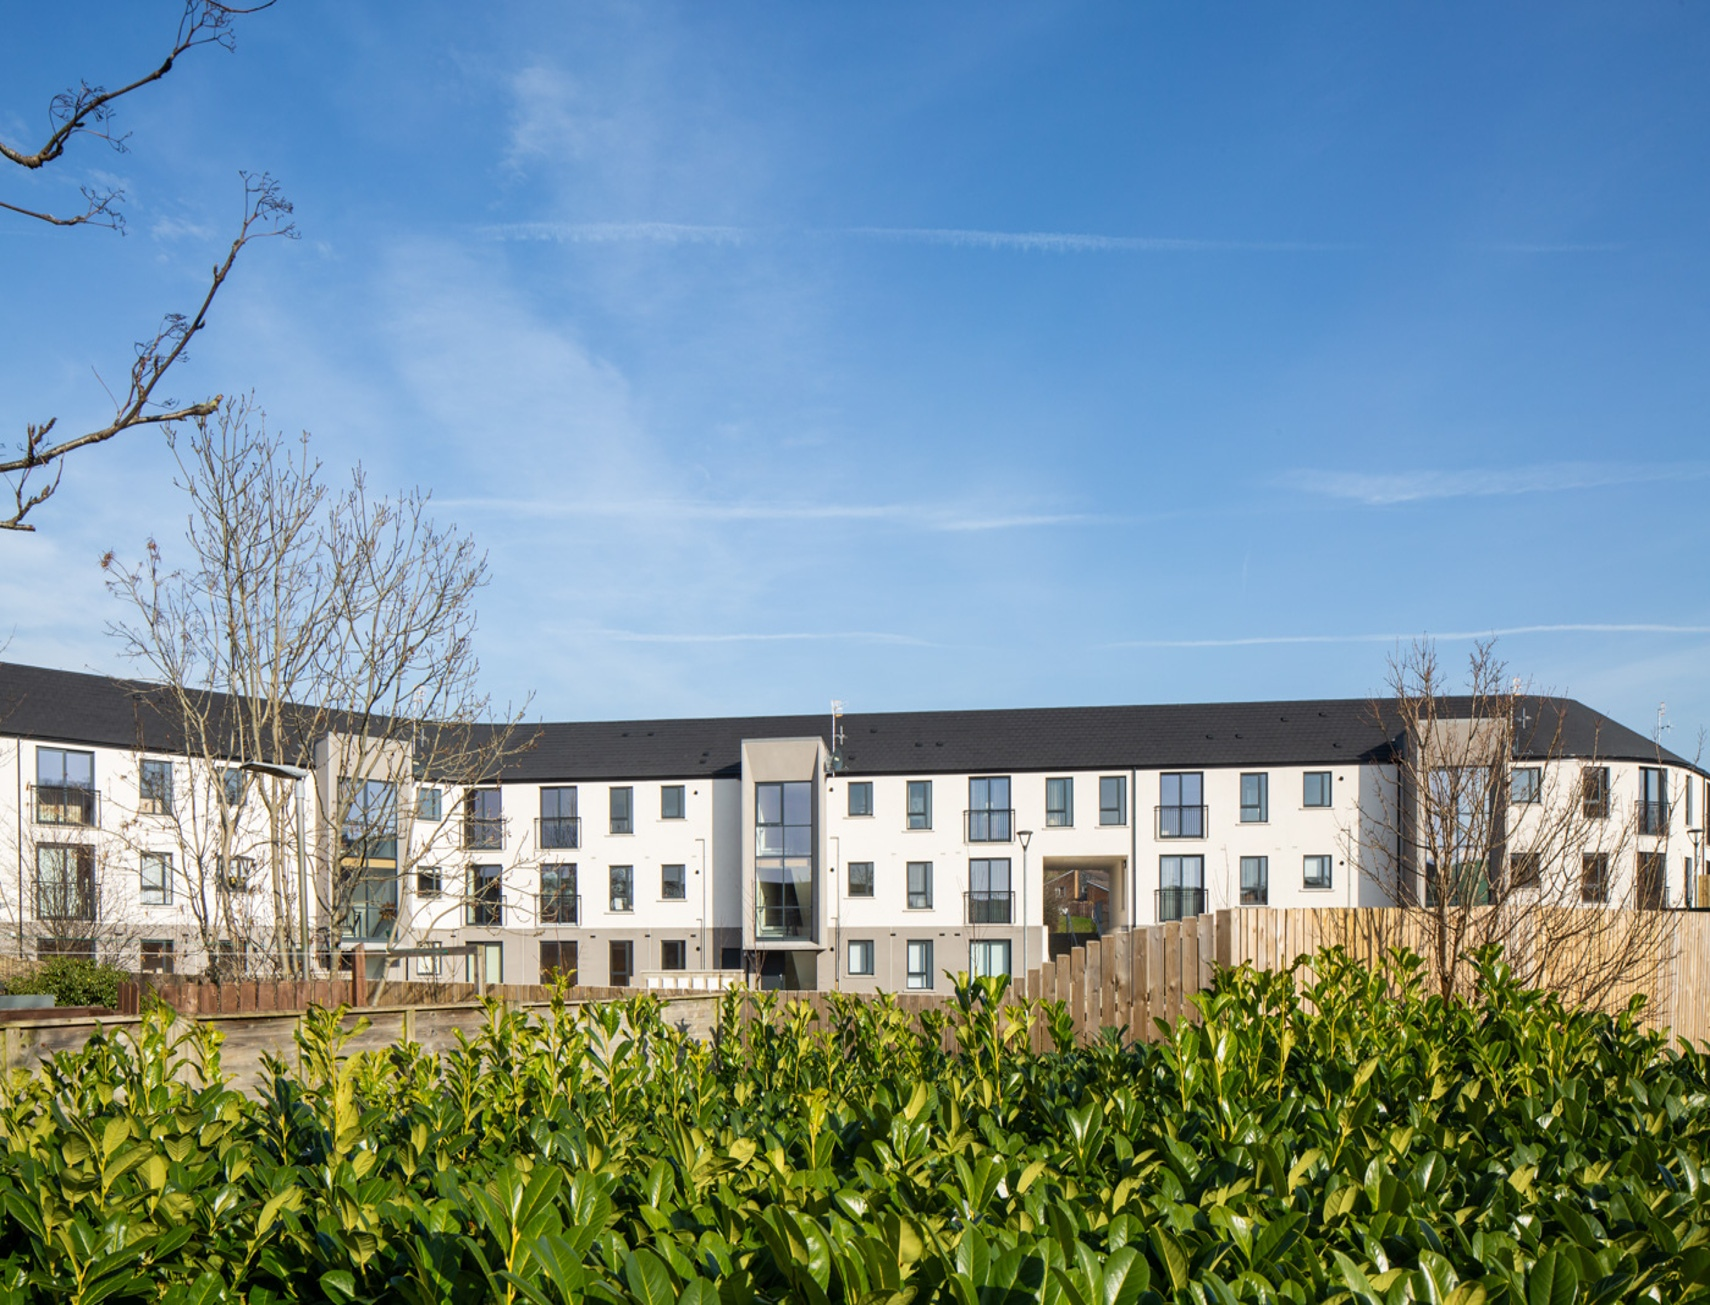 Social housing at Dromore Street, Banbridge